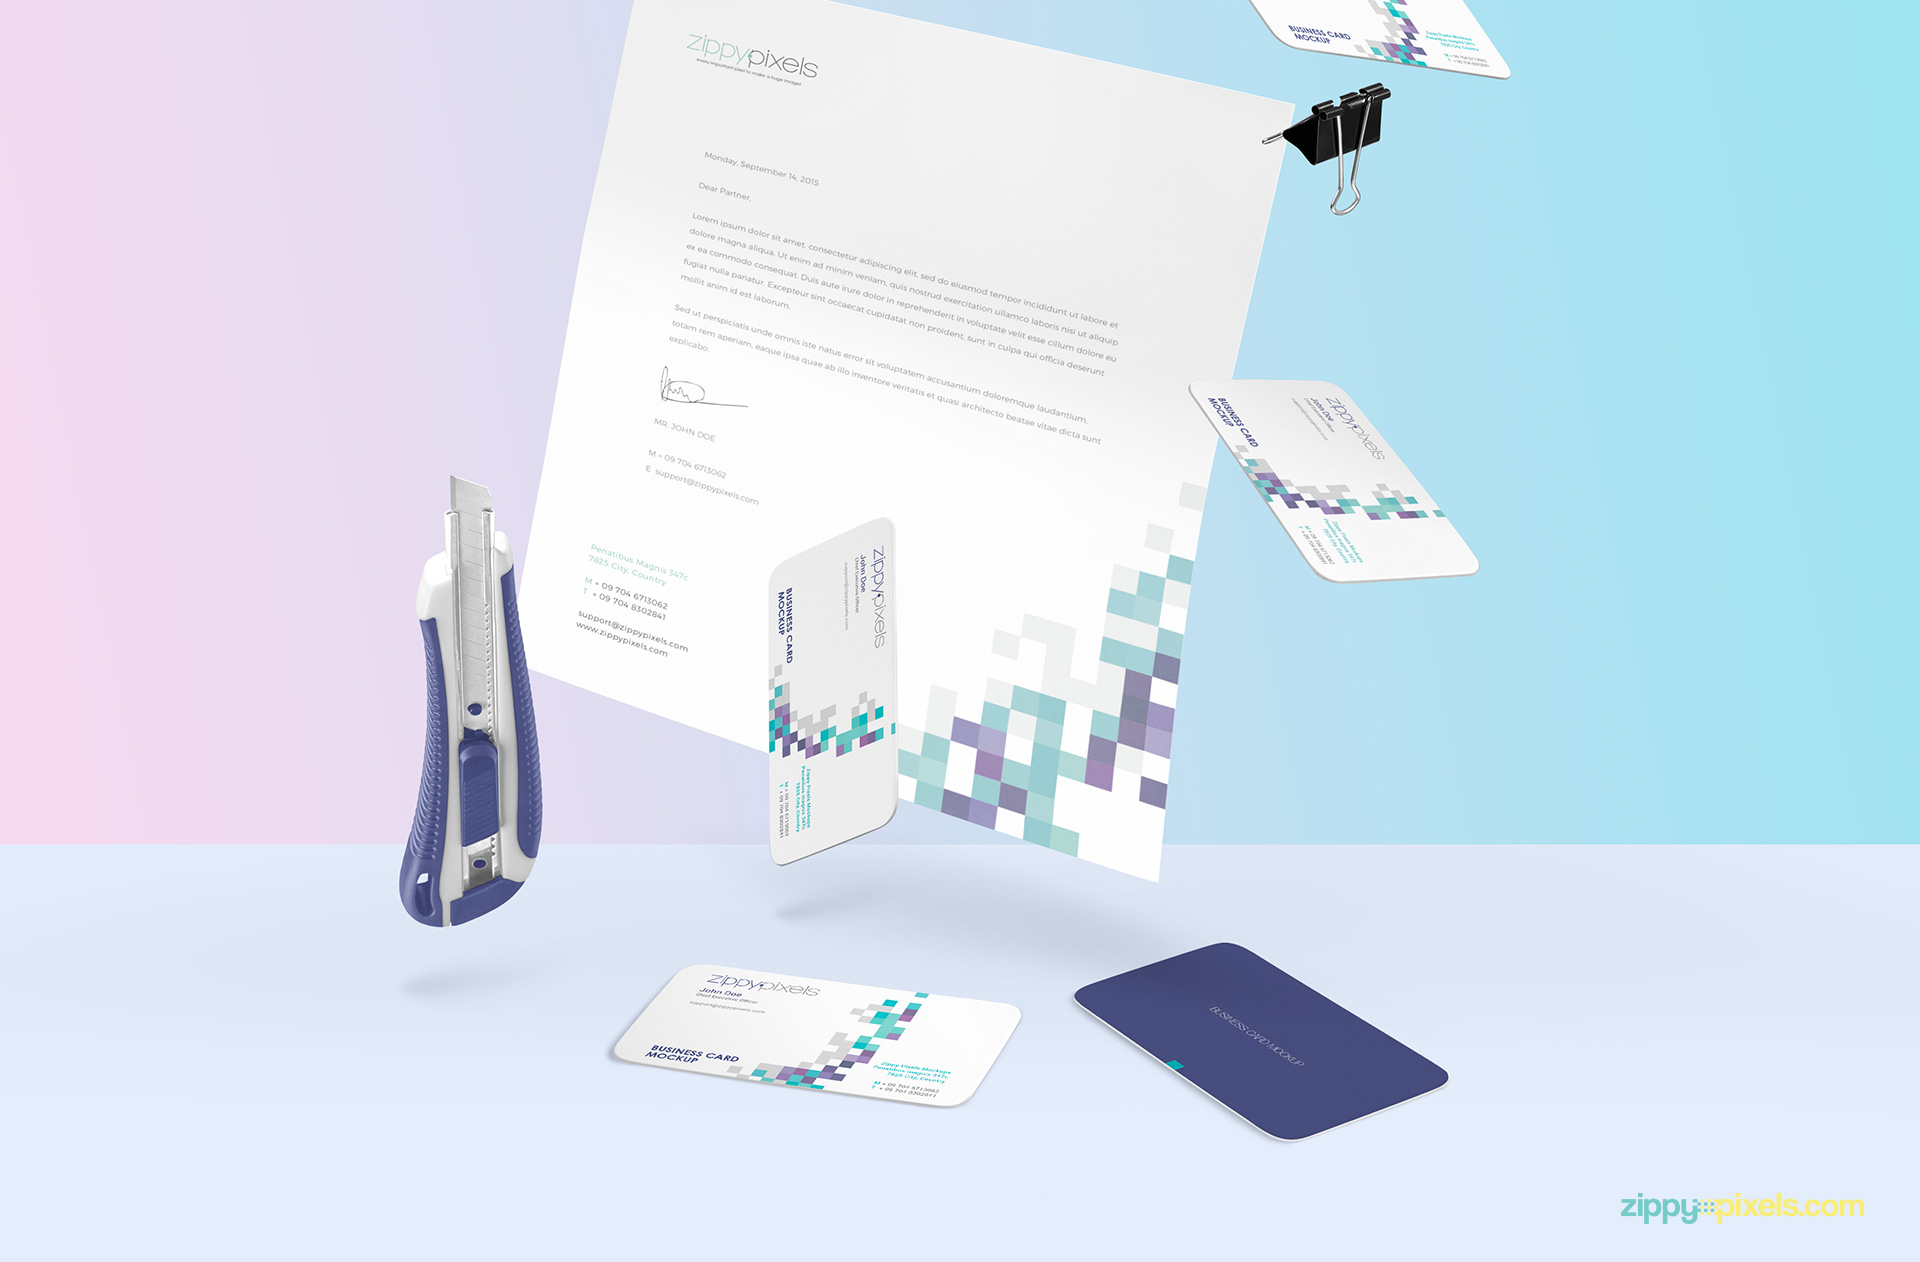 gravity-scene-A4-paper-paper-cutter-business-card-2